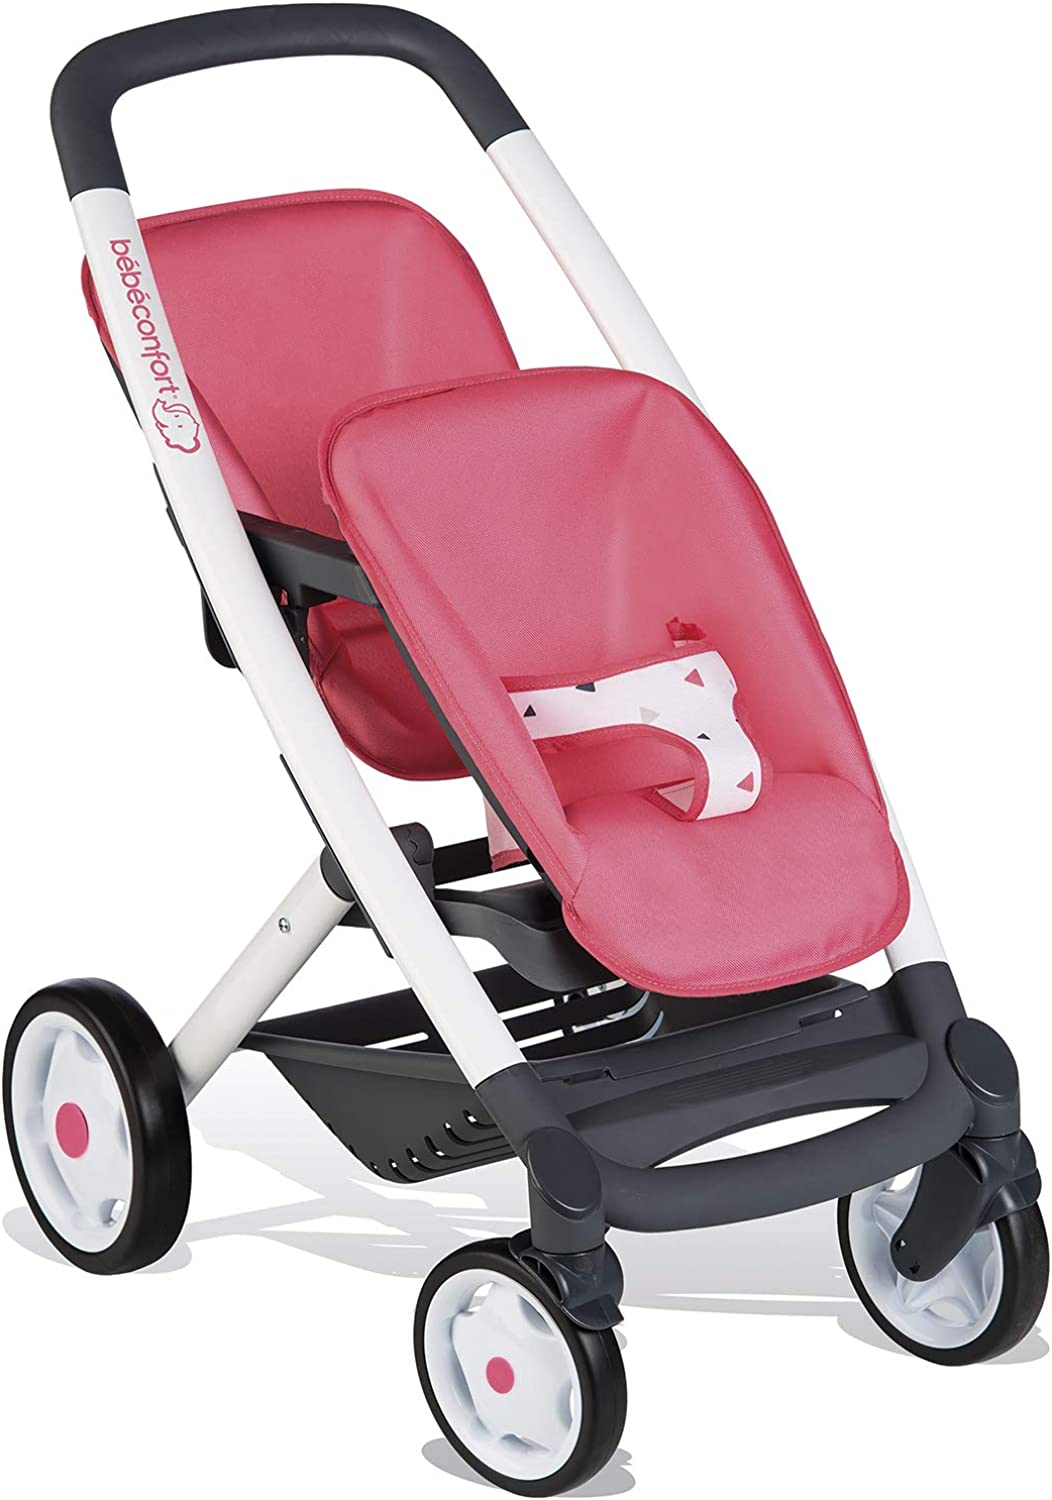 Smoby Bebé Confort Combi Twin Chair pink